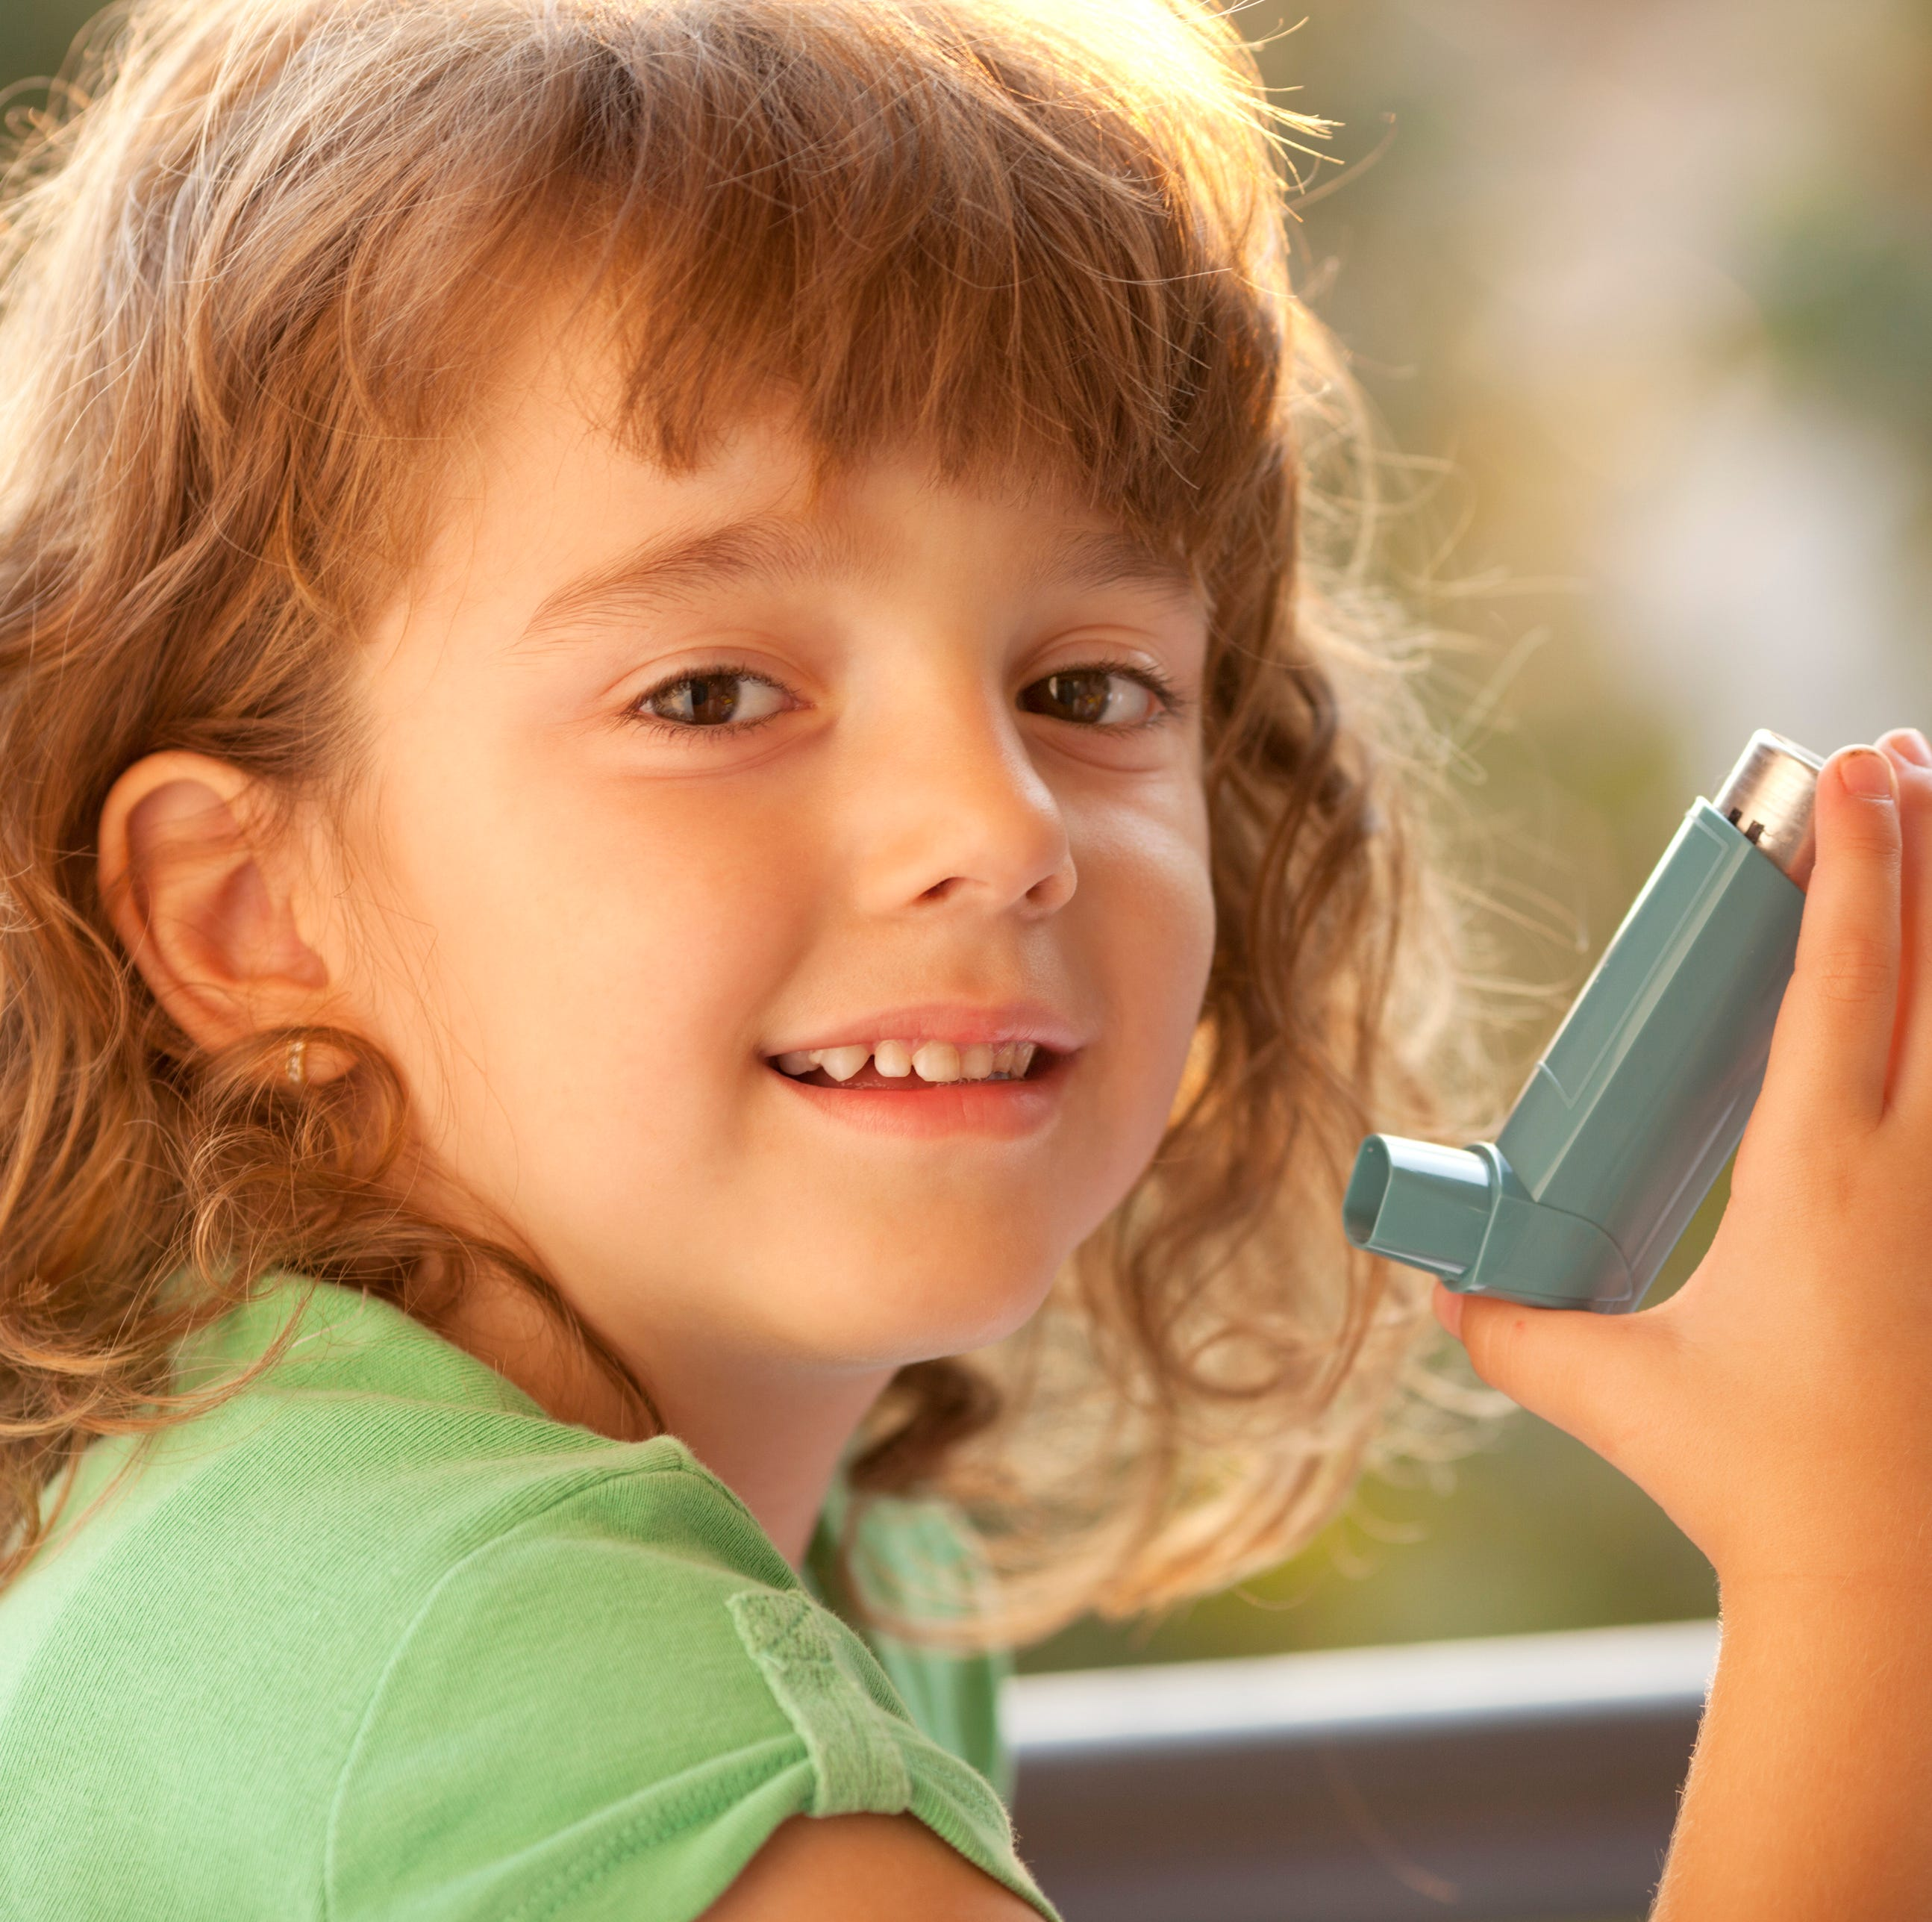 Ask the Pharmacist: Asthma inhaler reduces scary breathing problems